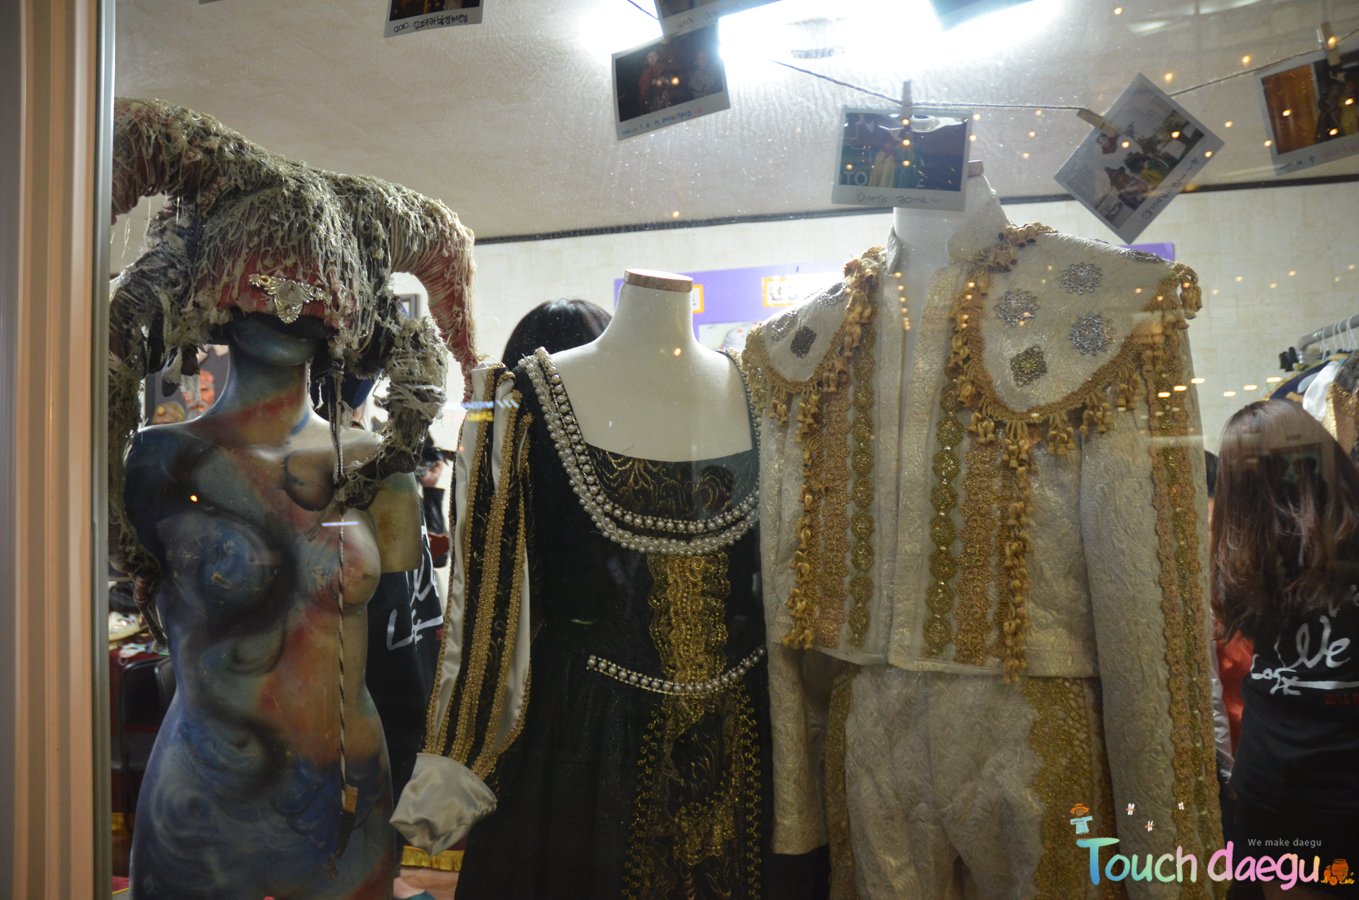 Costume are displayed in Daegu opera house